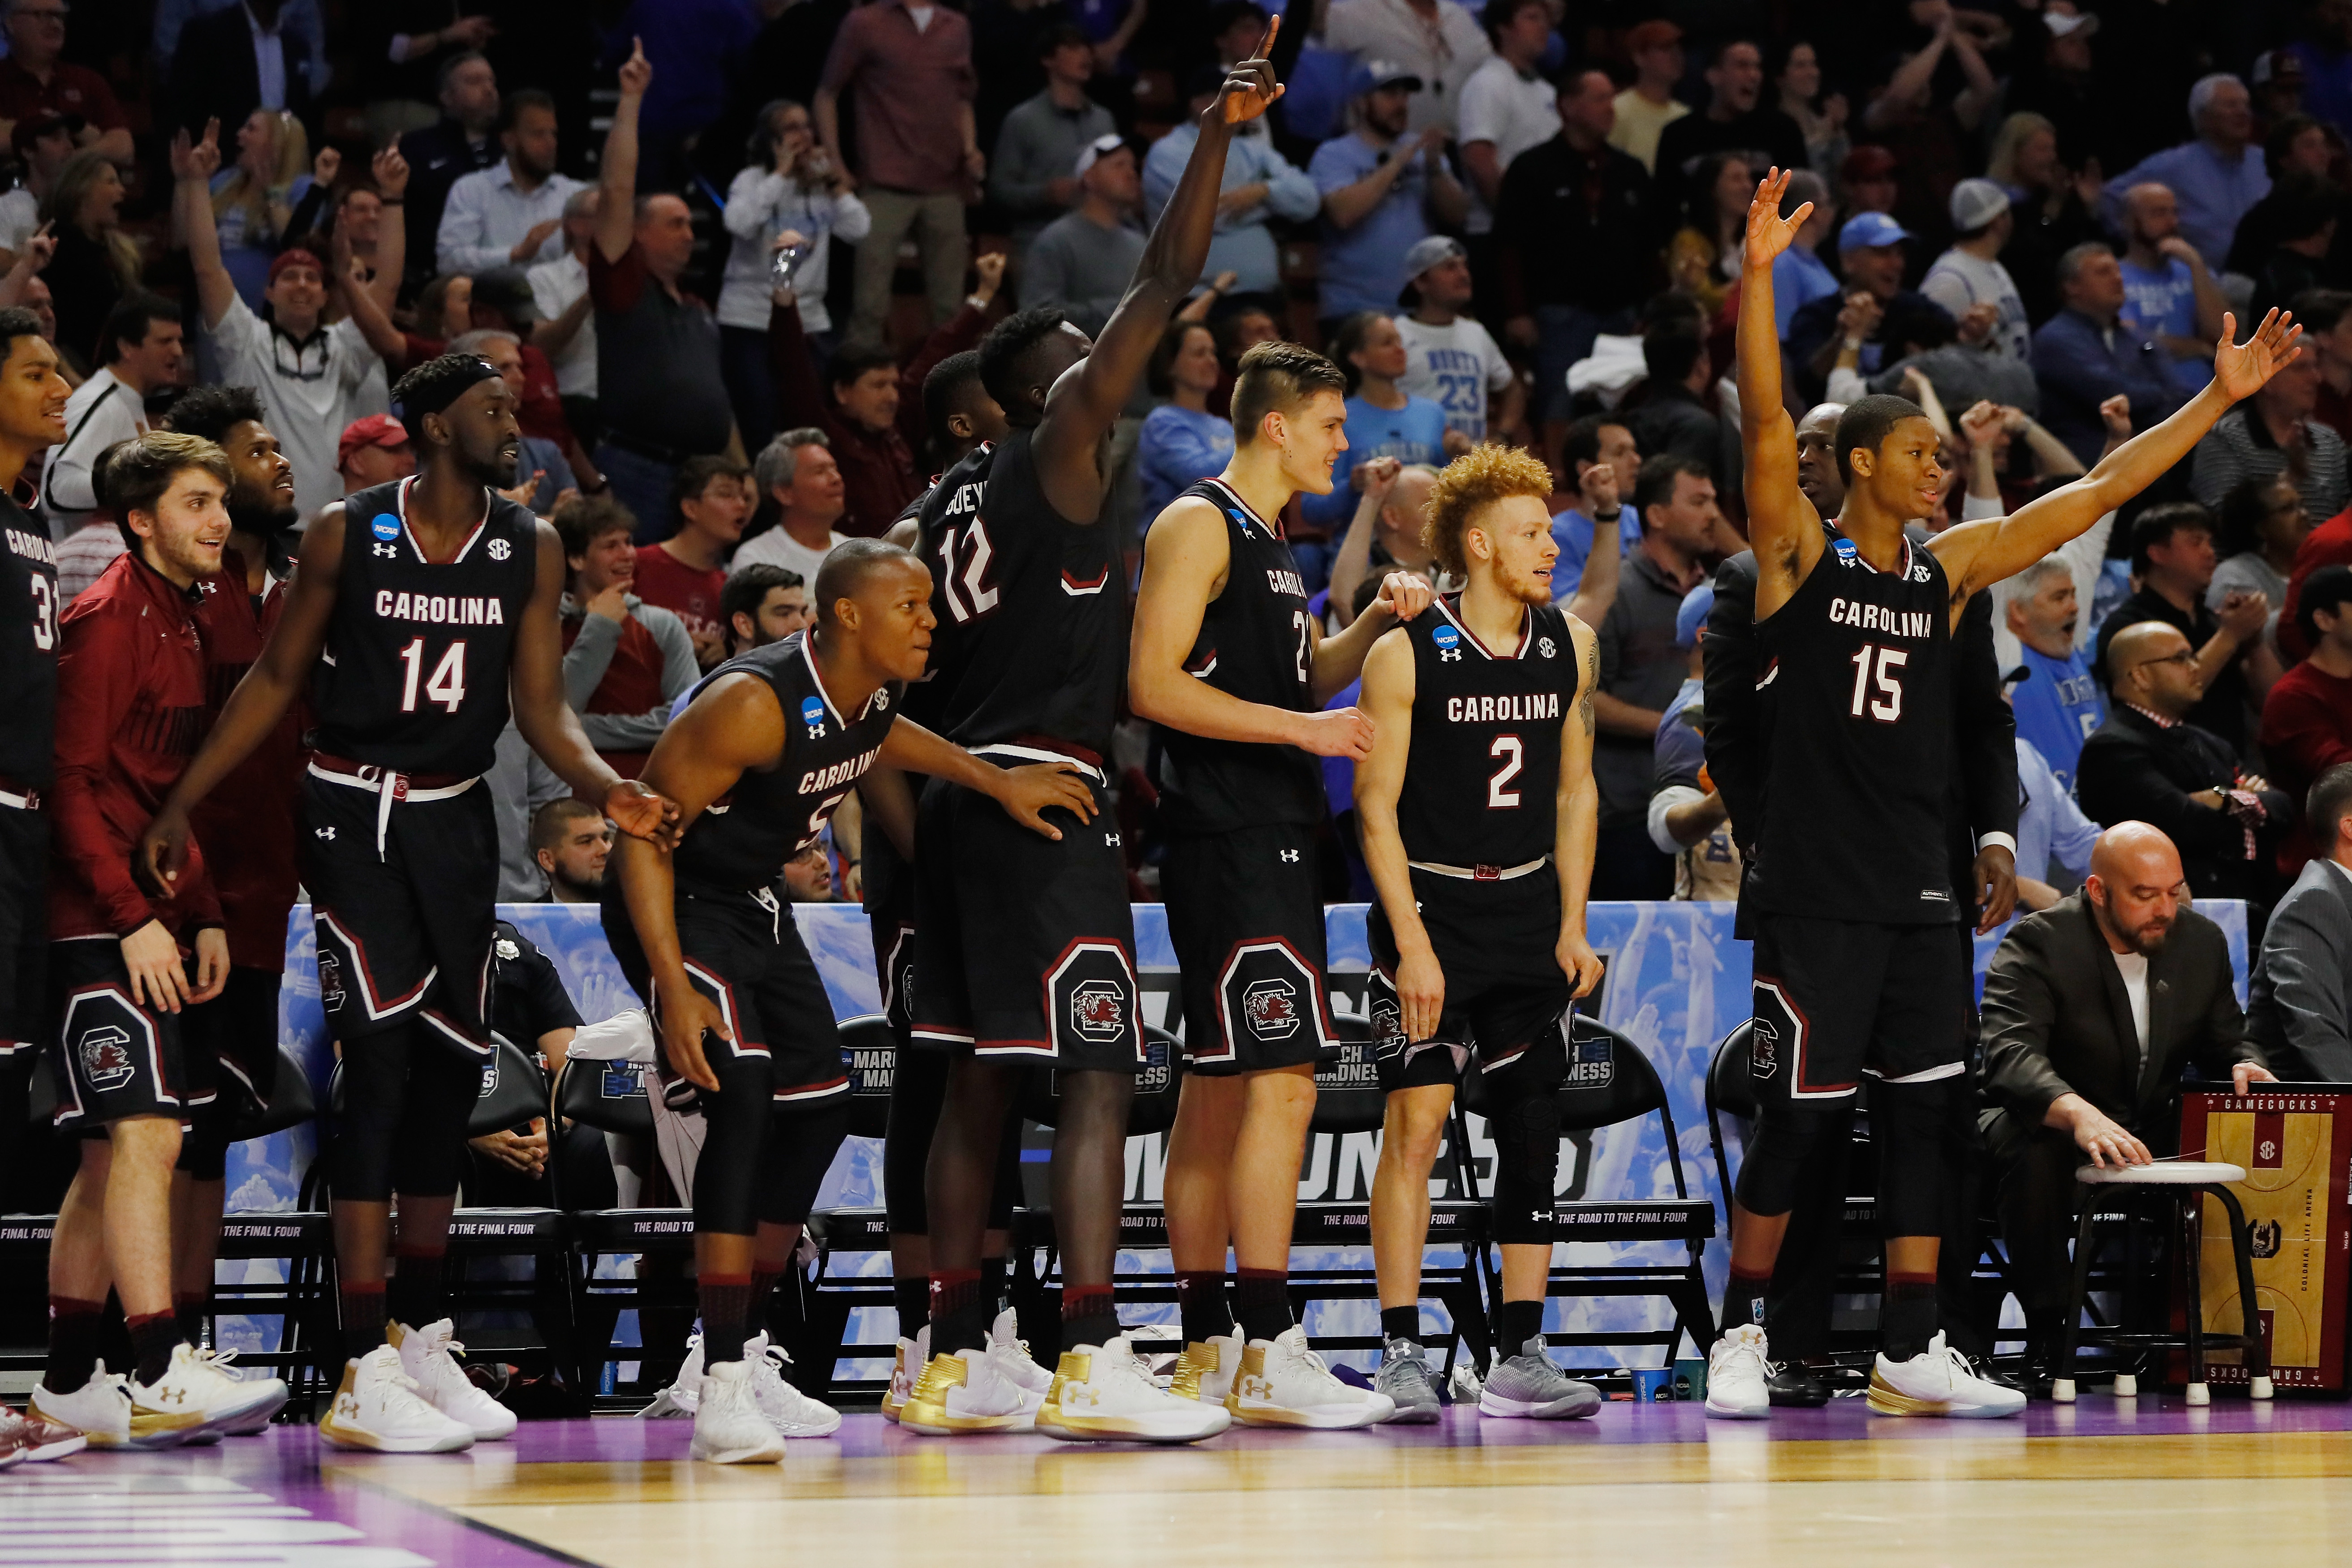 Your March Madness bracket isn't as busted as you think